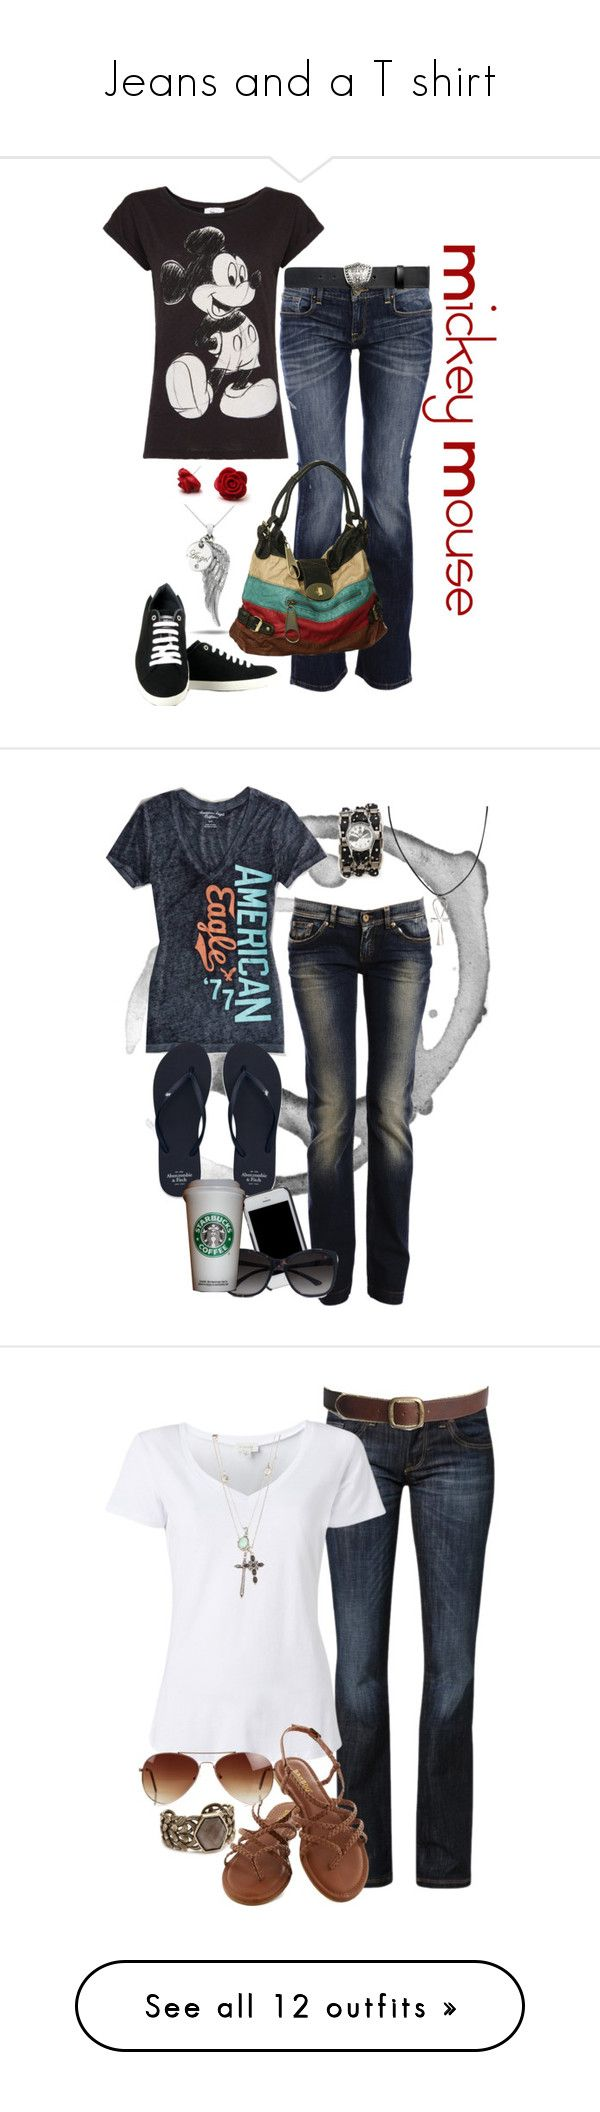 """""""Jeans and a T shirt"""" by sherri-leger ❤ liked on Polyvore featuring Vegetarian Shoes, Carlos Miele, Gucci, MANGO, Dolce&Gabbana, American Eagle Outfitters, Abercrombie & Fitch, Tory Burch, GUESS by Marciano and River Island"""